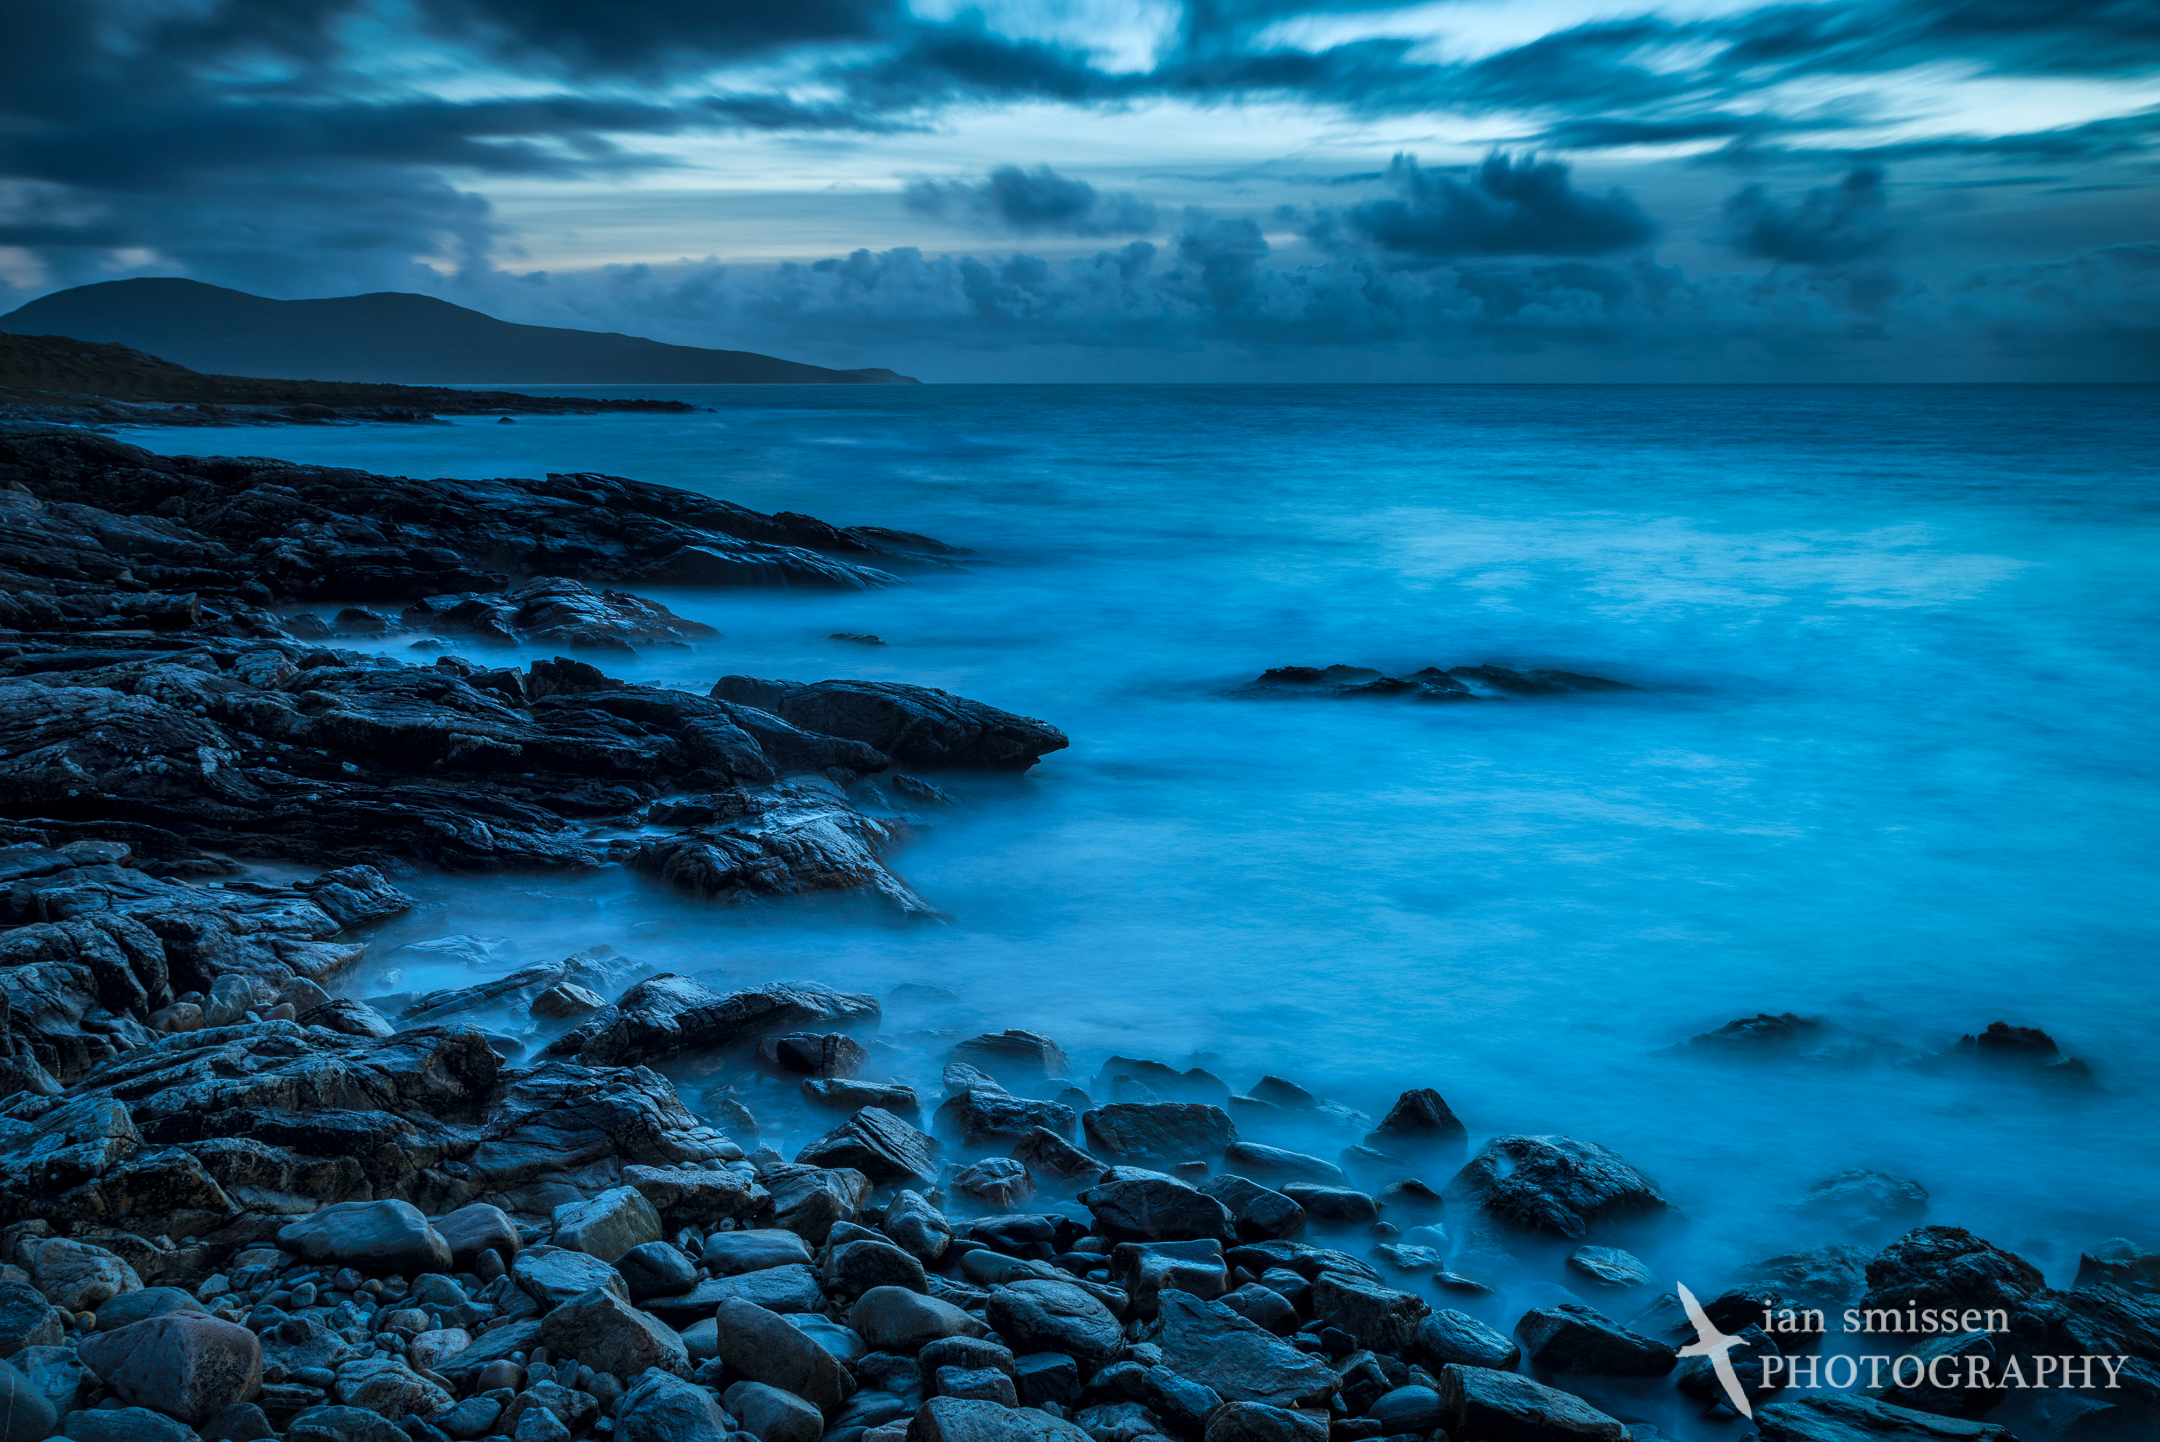 Blue hour at Horgabost Beach